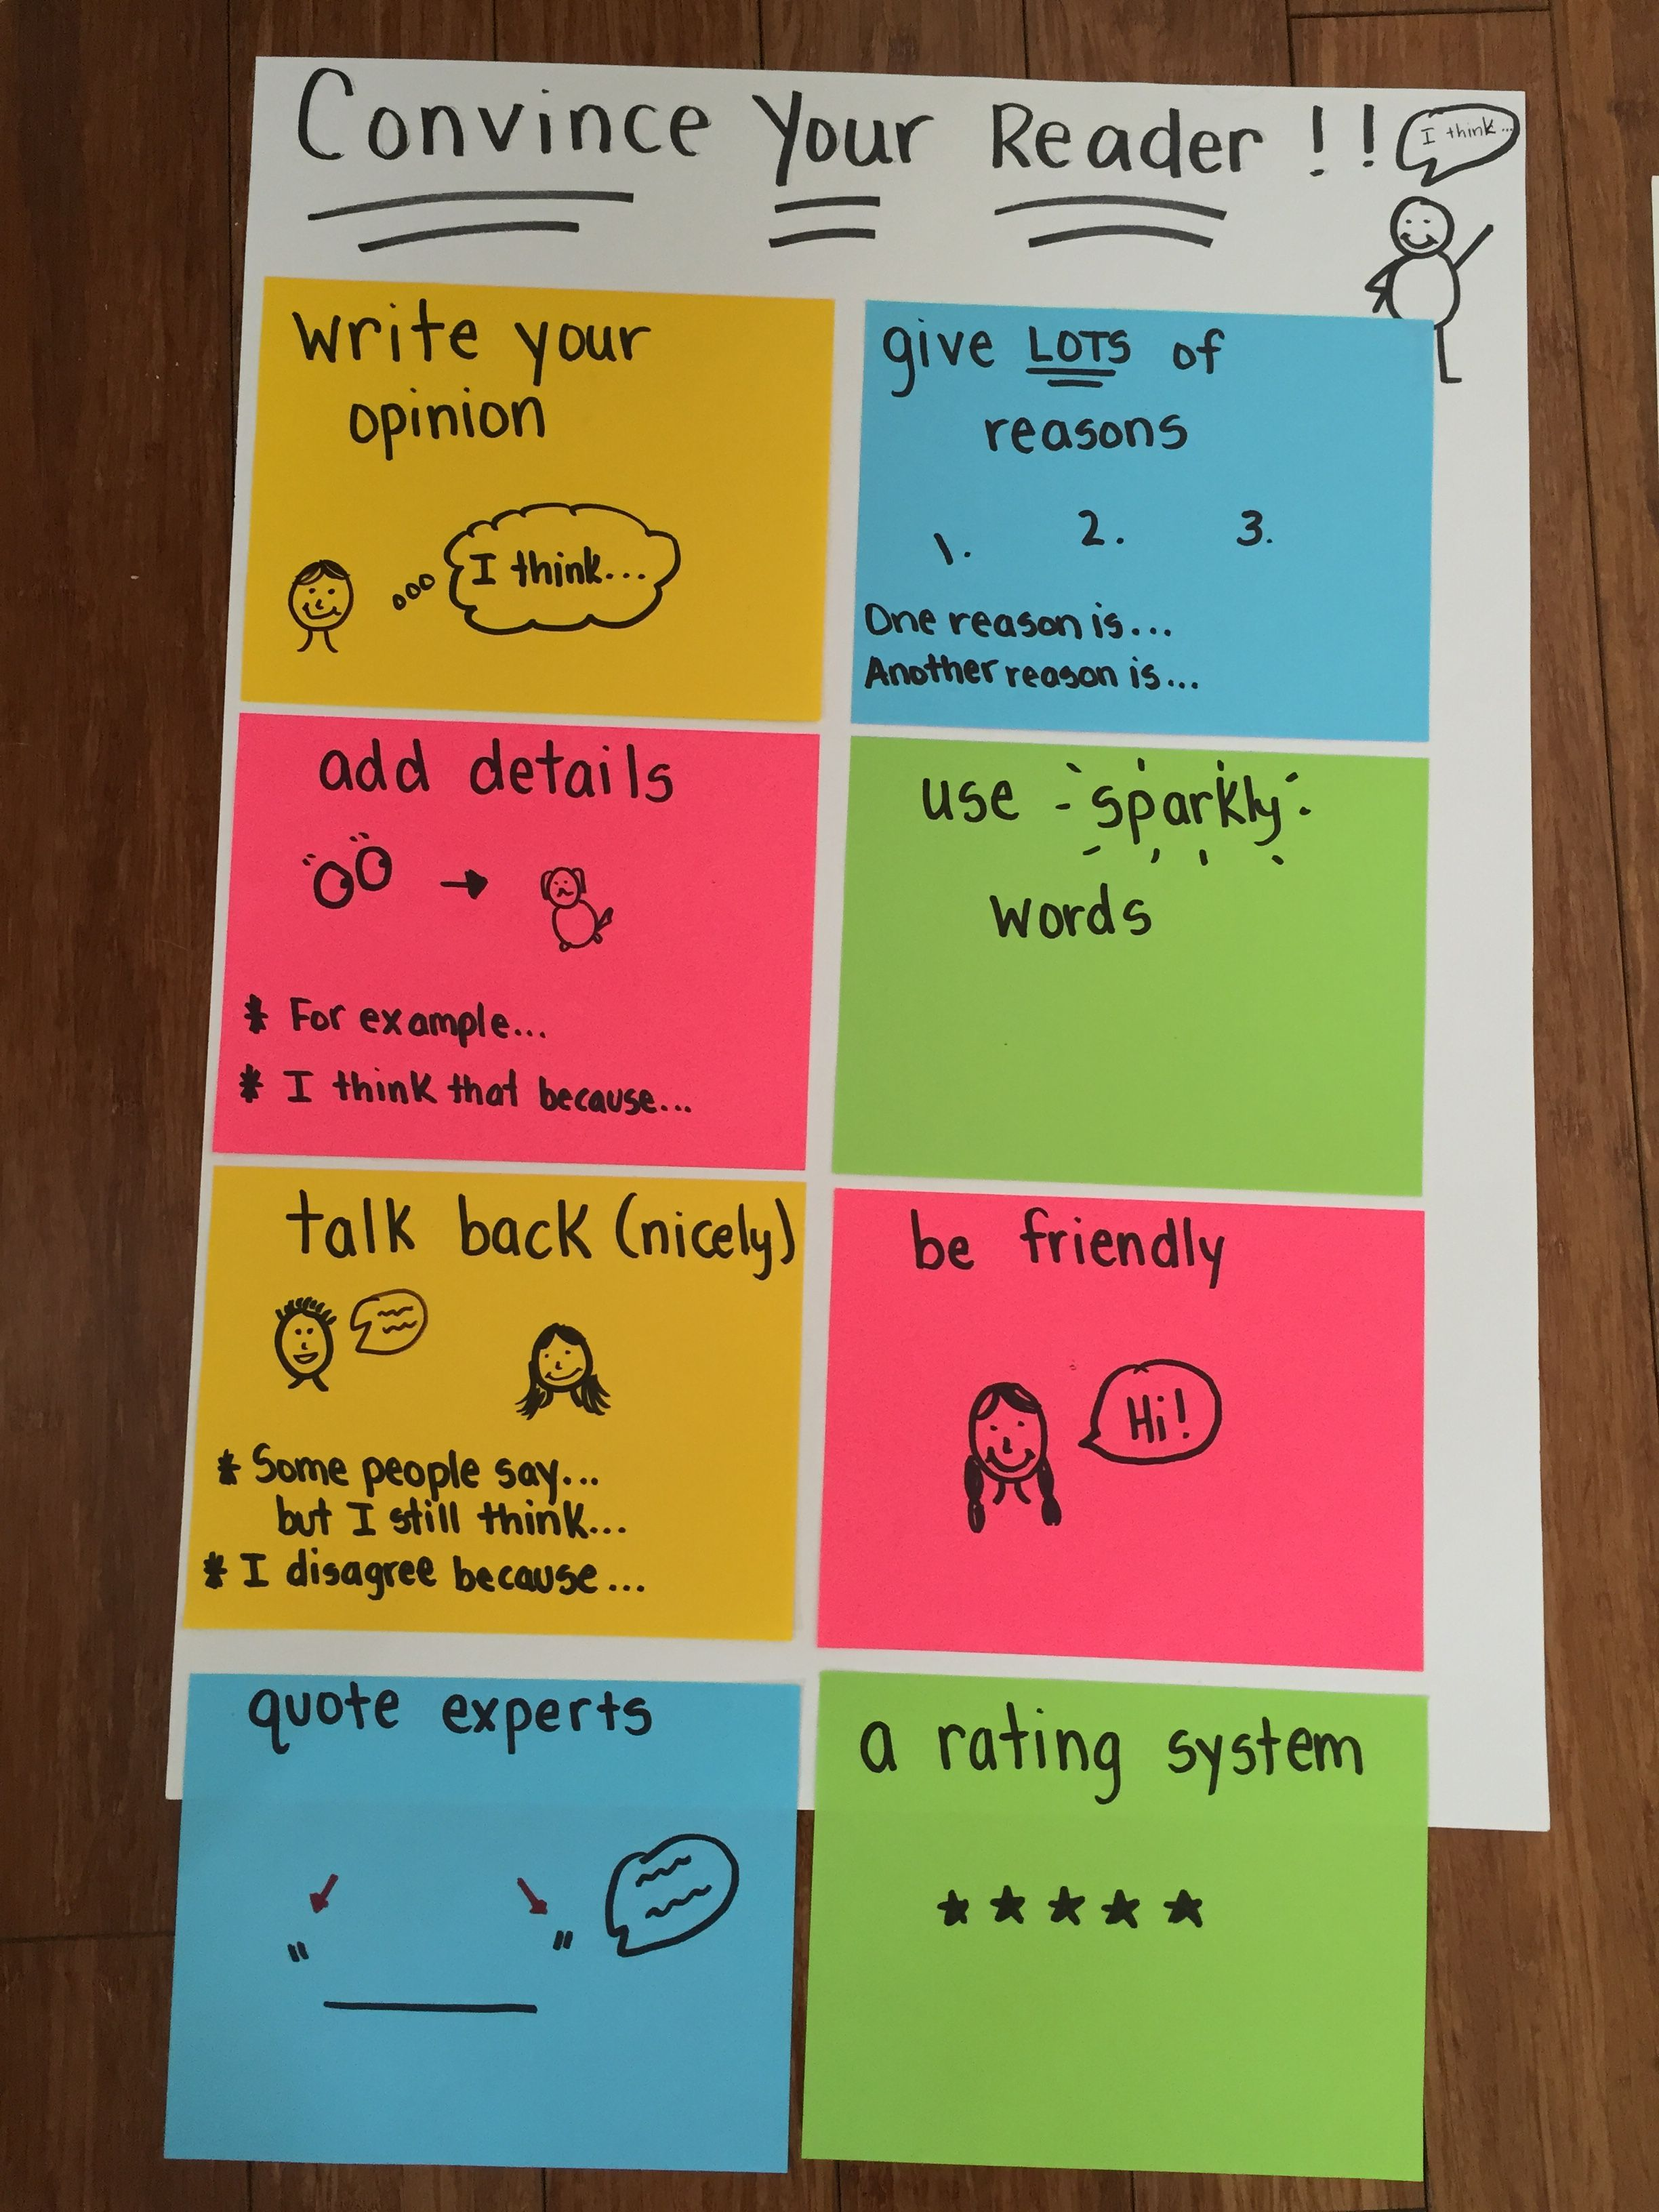 Ways To Be More Convincing Elaboration In Opinion Writing